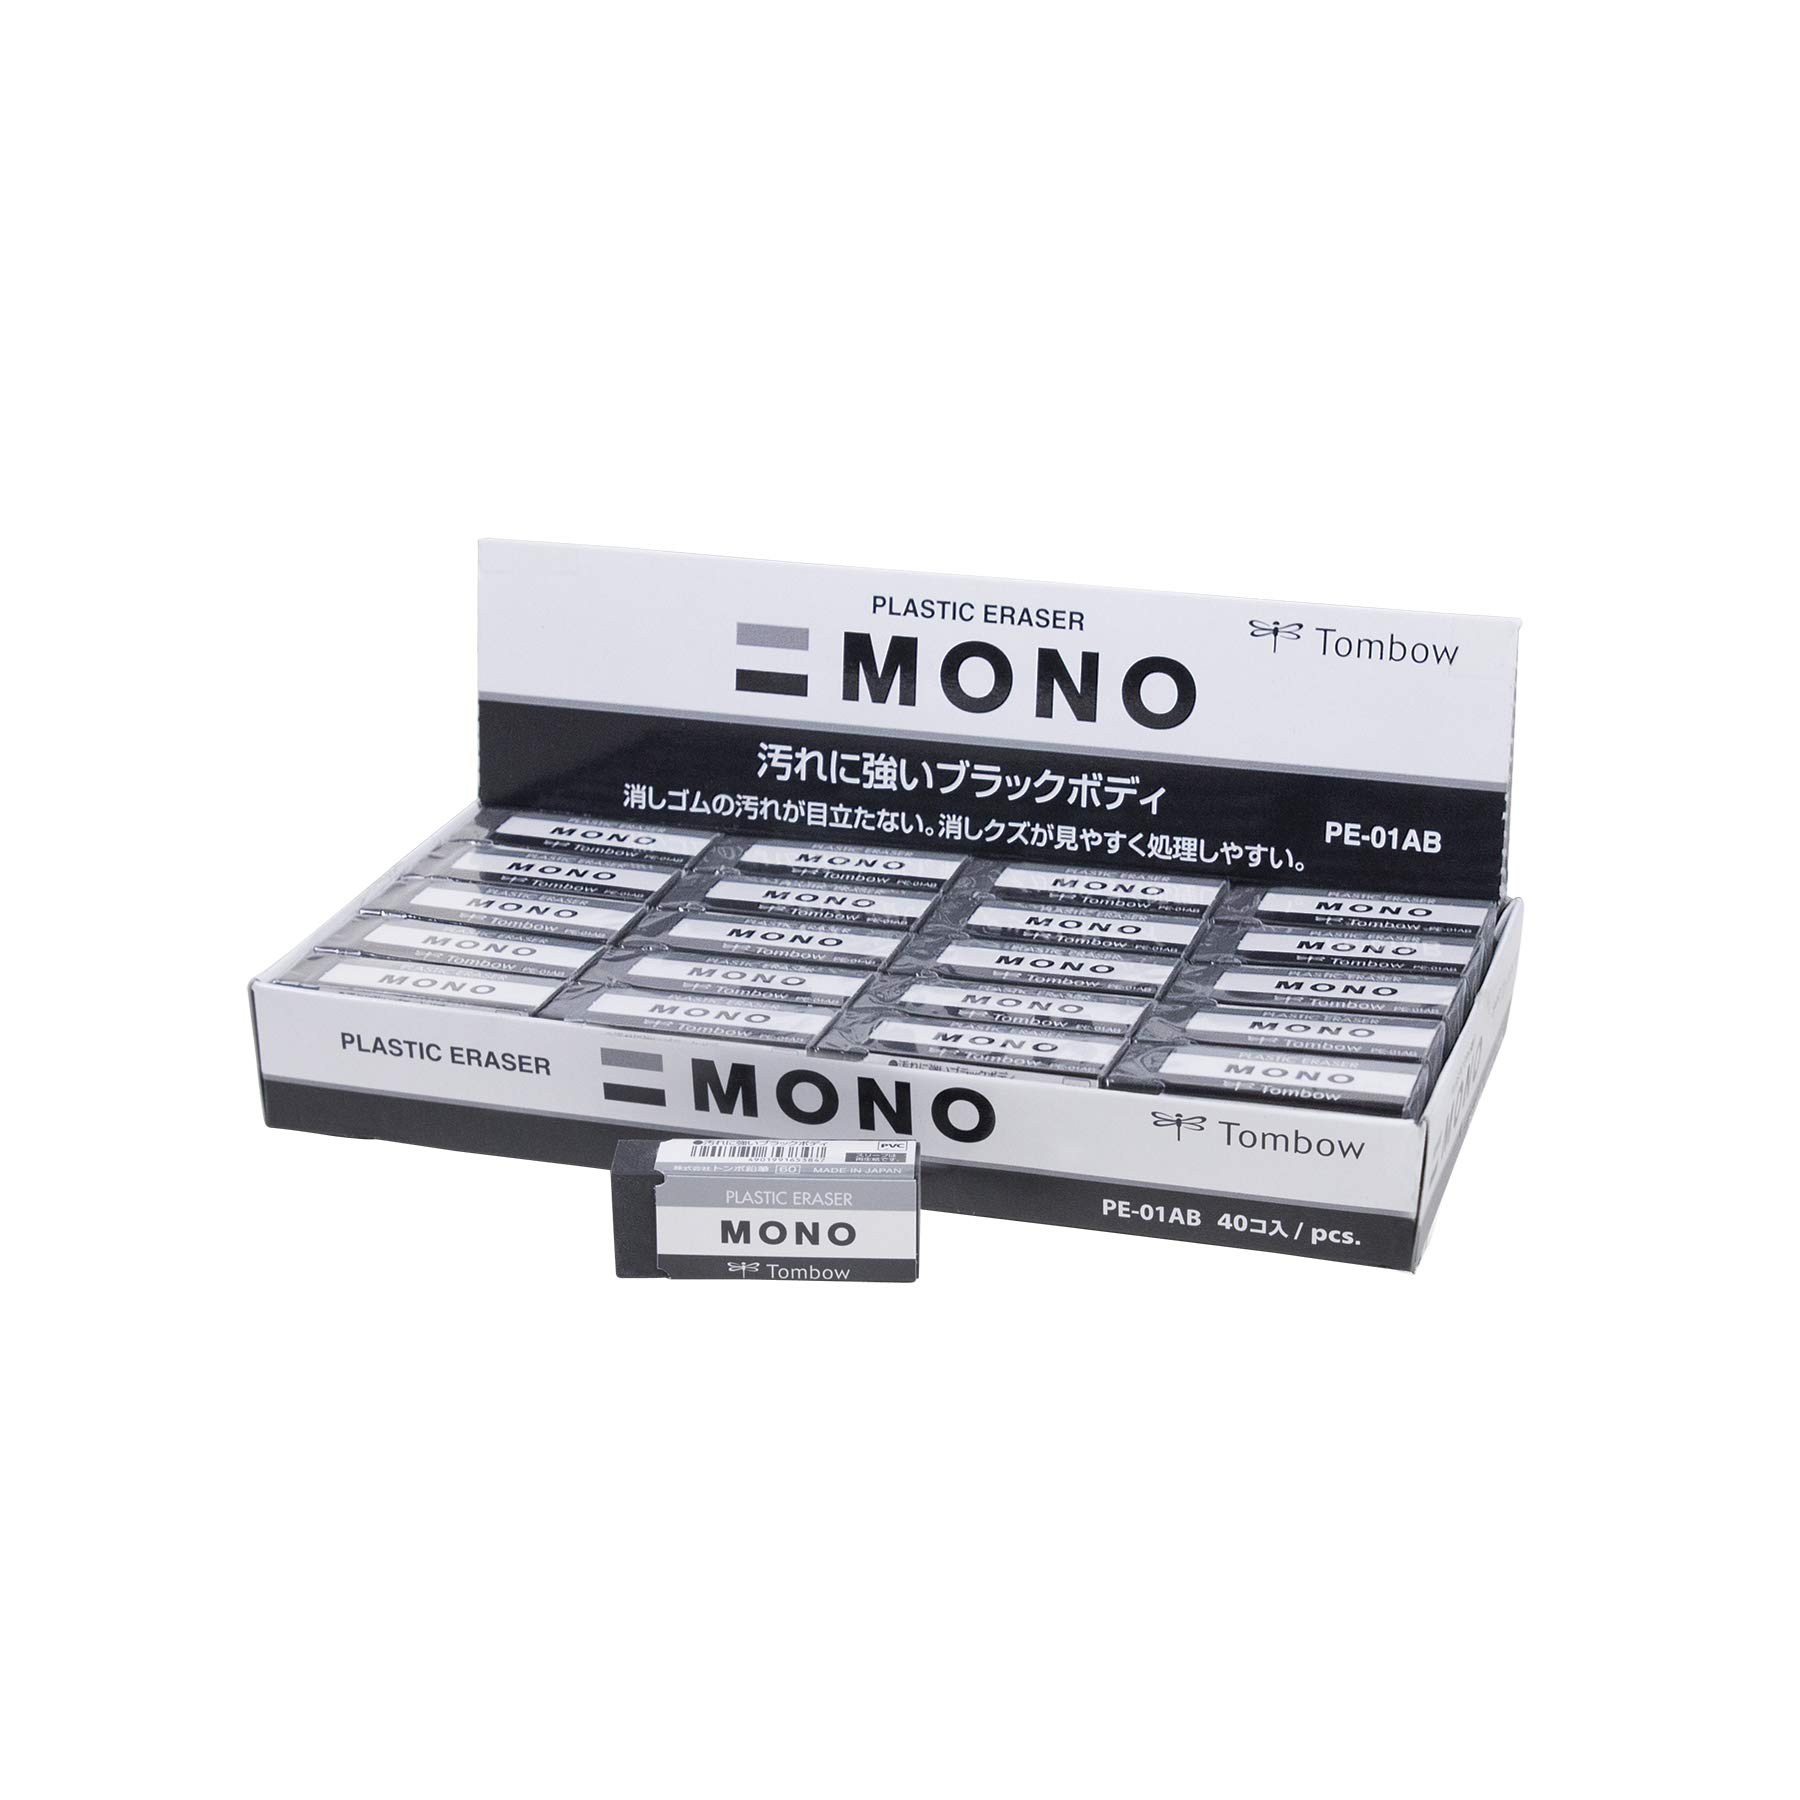 TOMBOW Mono Eraser, Black, Small, 40 PC Box, Pack, Piece by Tombow (Image #2)